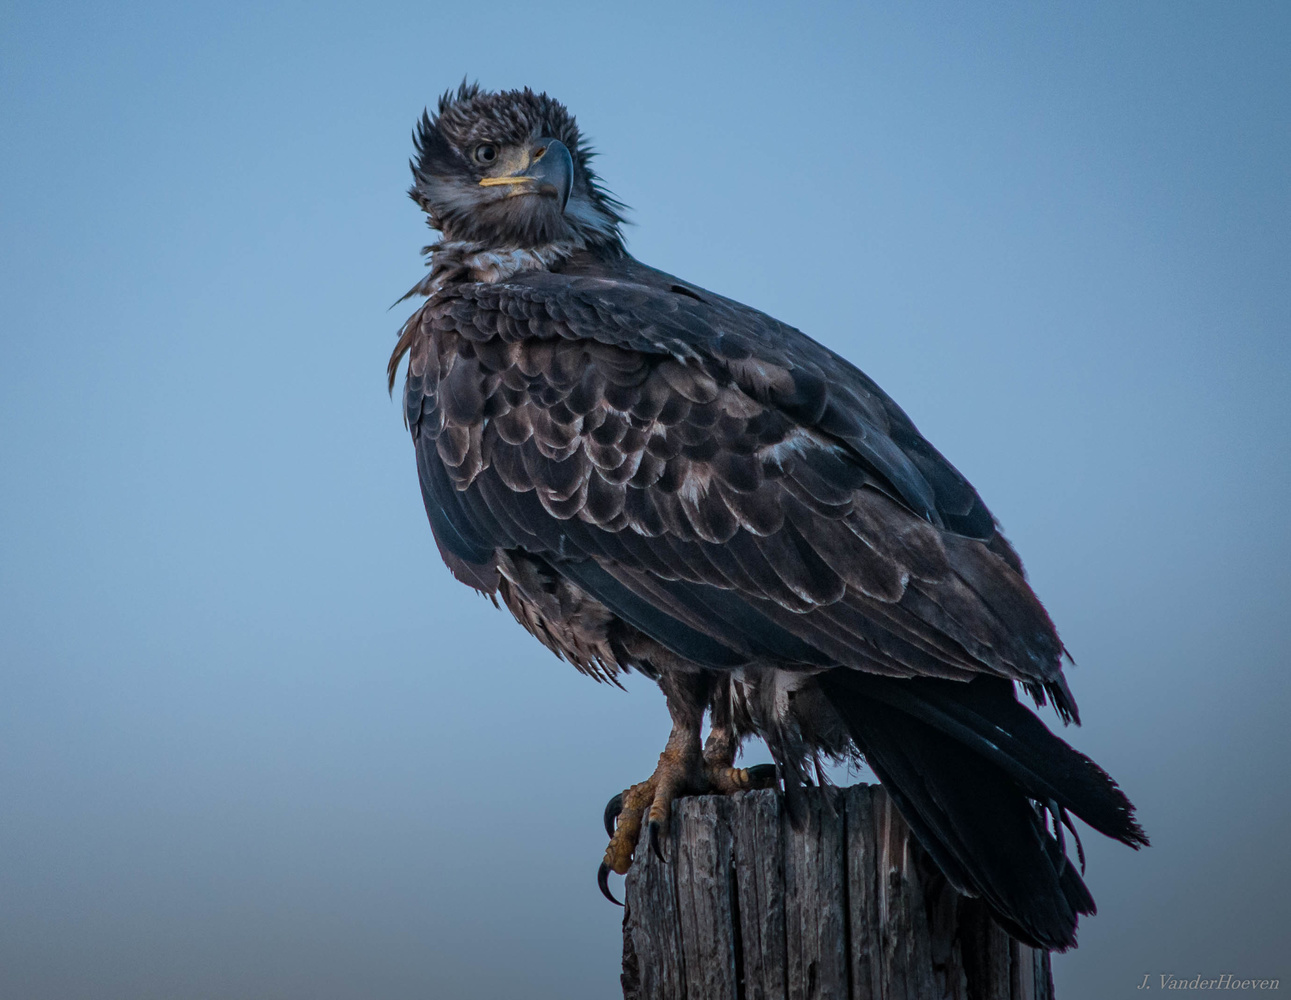 Young Eagle by Jake VanderHoeven